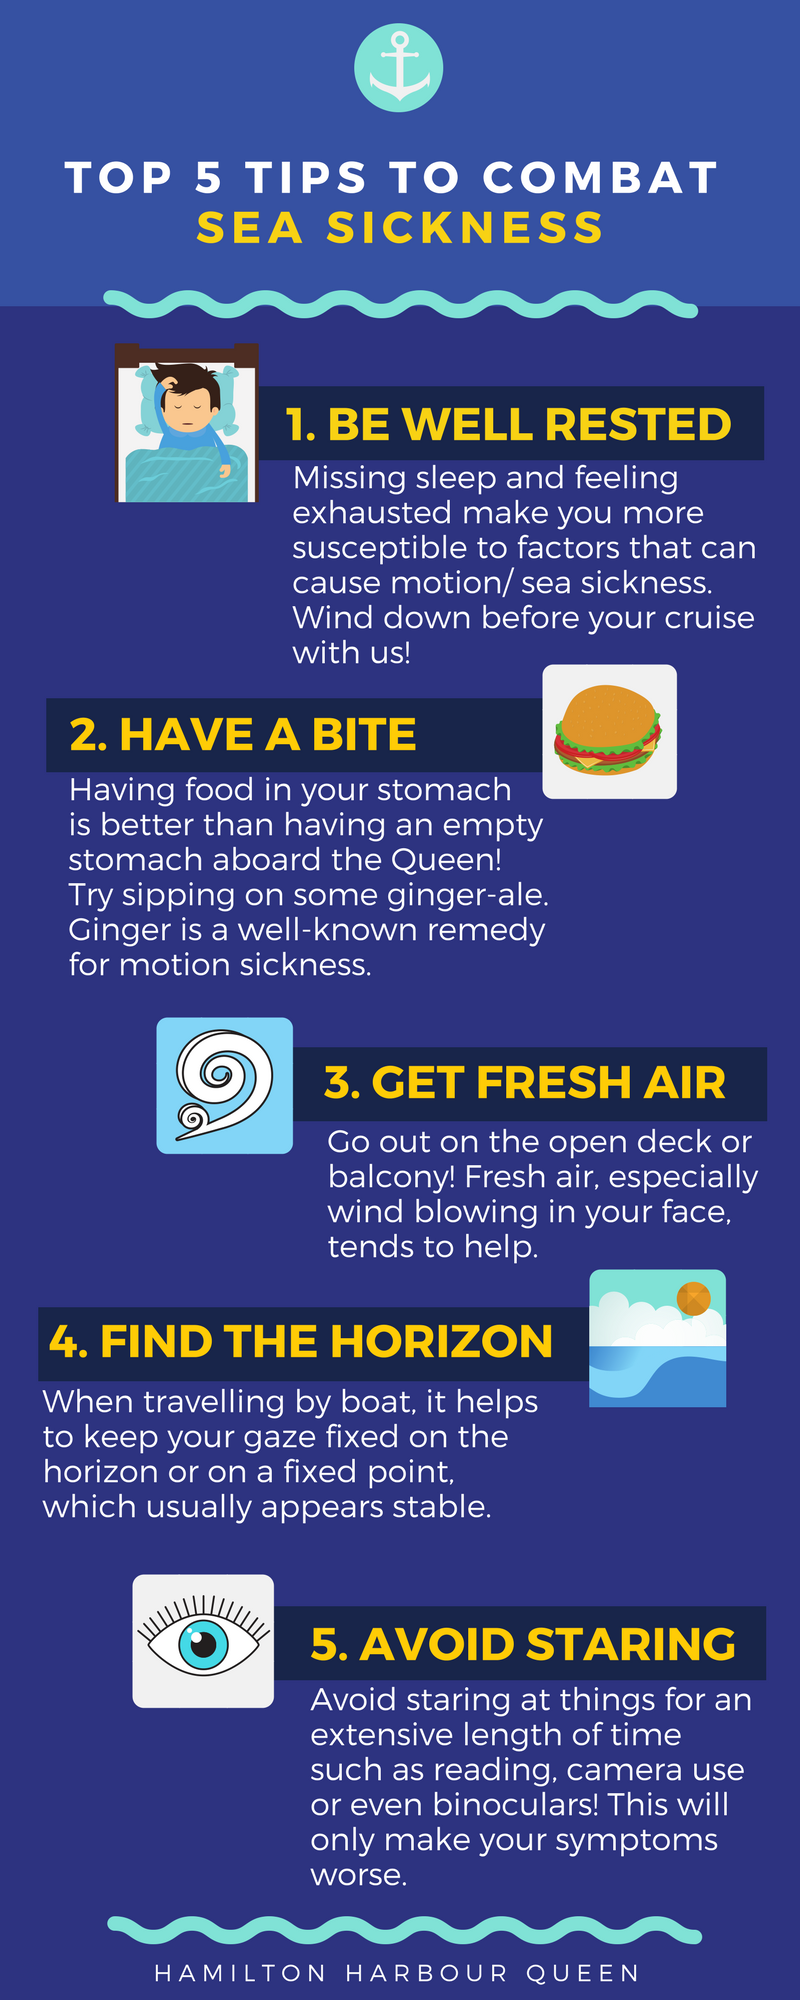 top 5 tips to combat Sea sickness.png